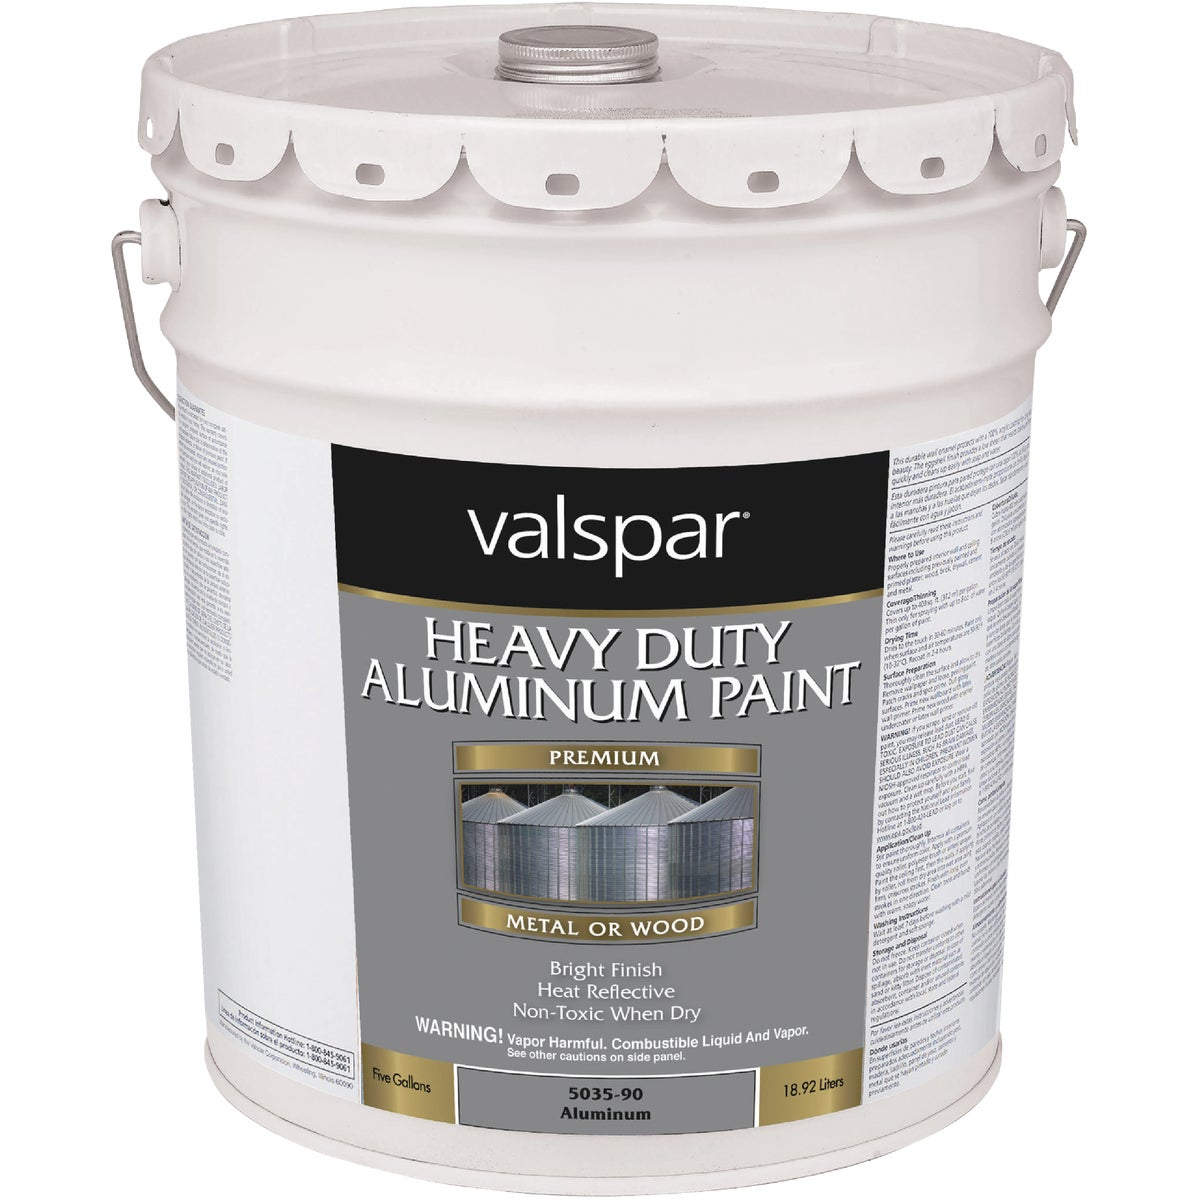 HD ALUMINUM PAINT